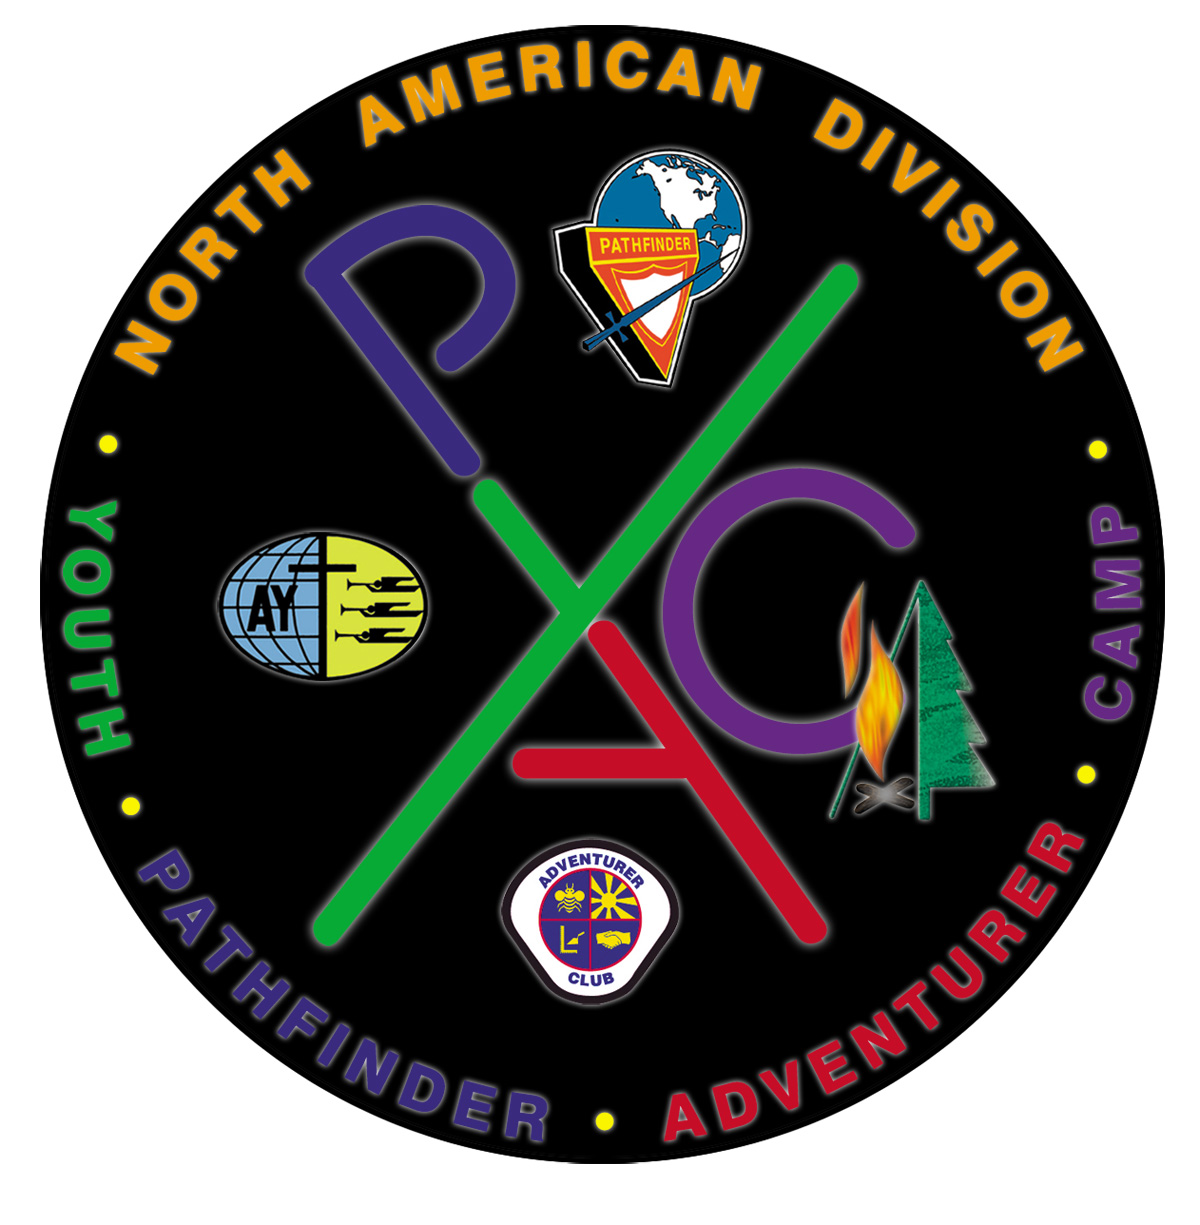 Ypac Committee Adventist Youth Ministries Nad